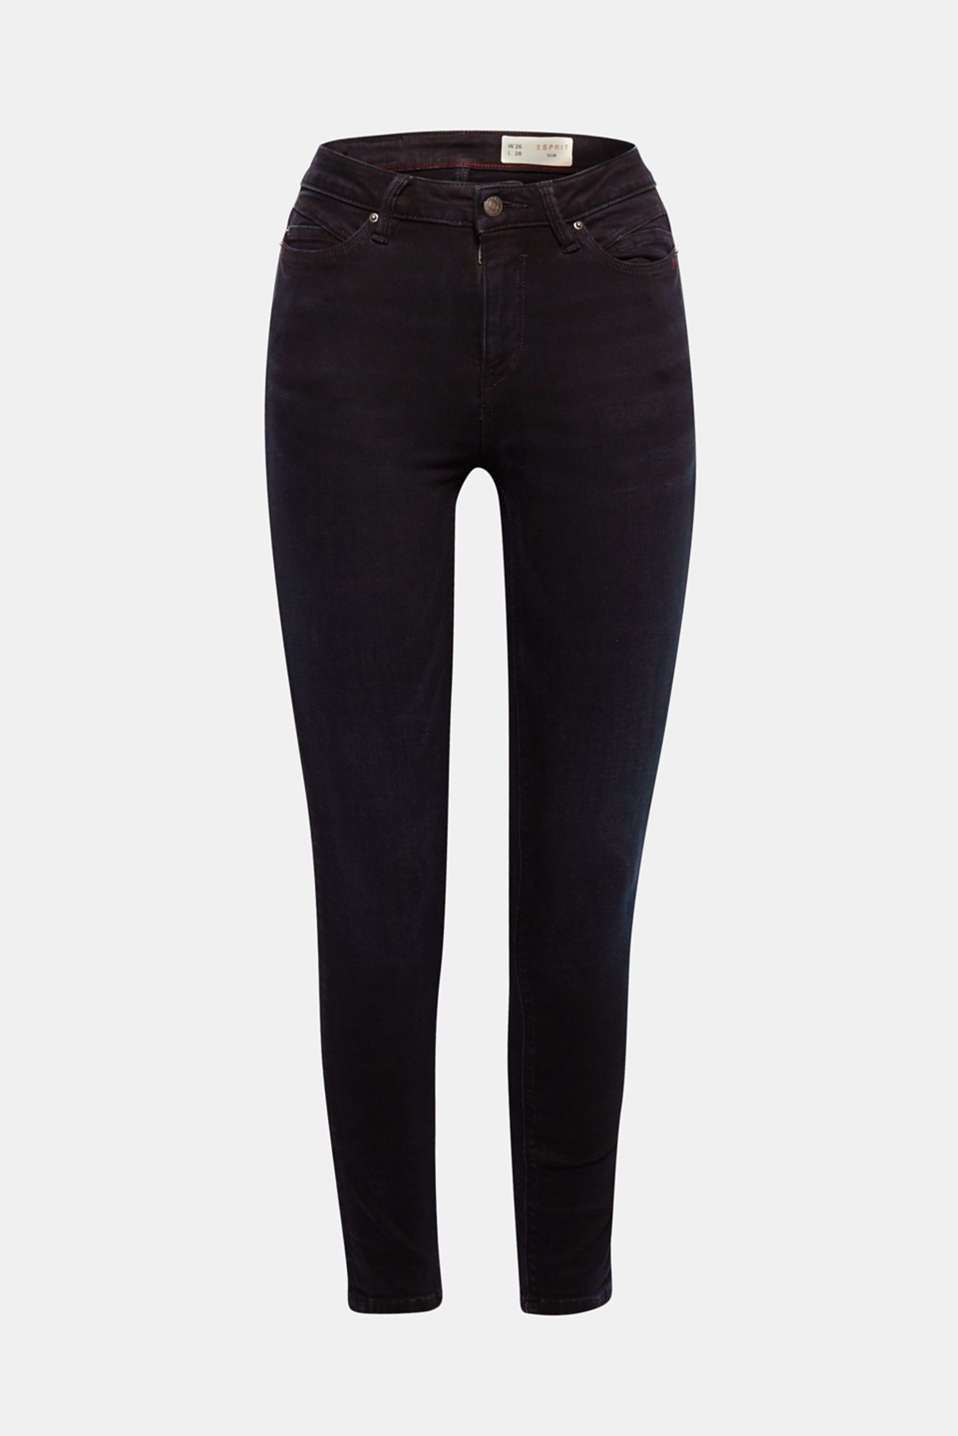 These clean, black stretch jeans with a slim-fitting design and a high waistband create a wonderful silhouette!